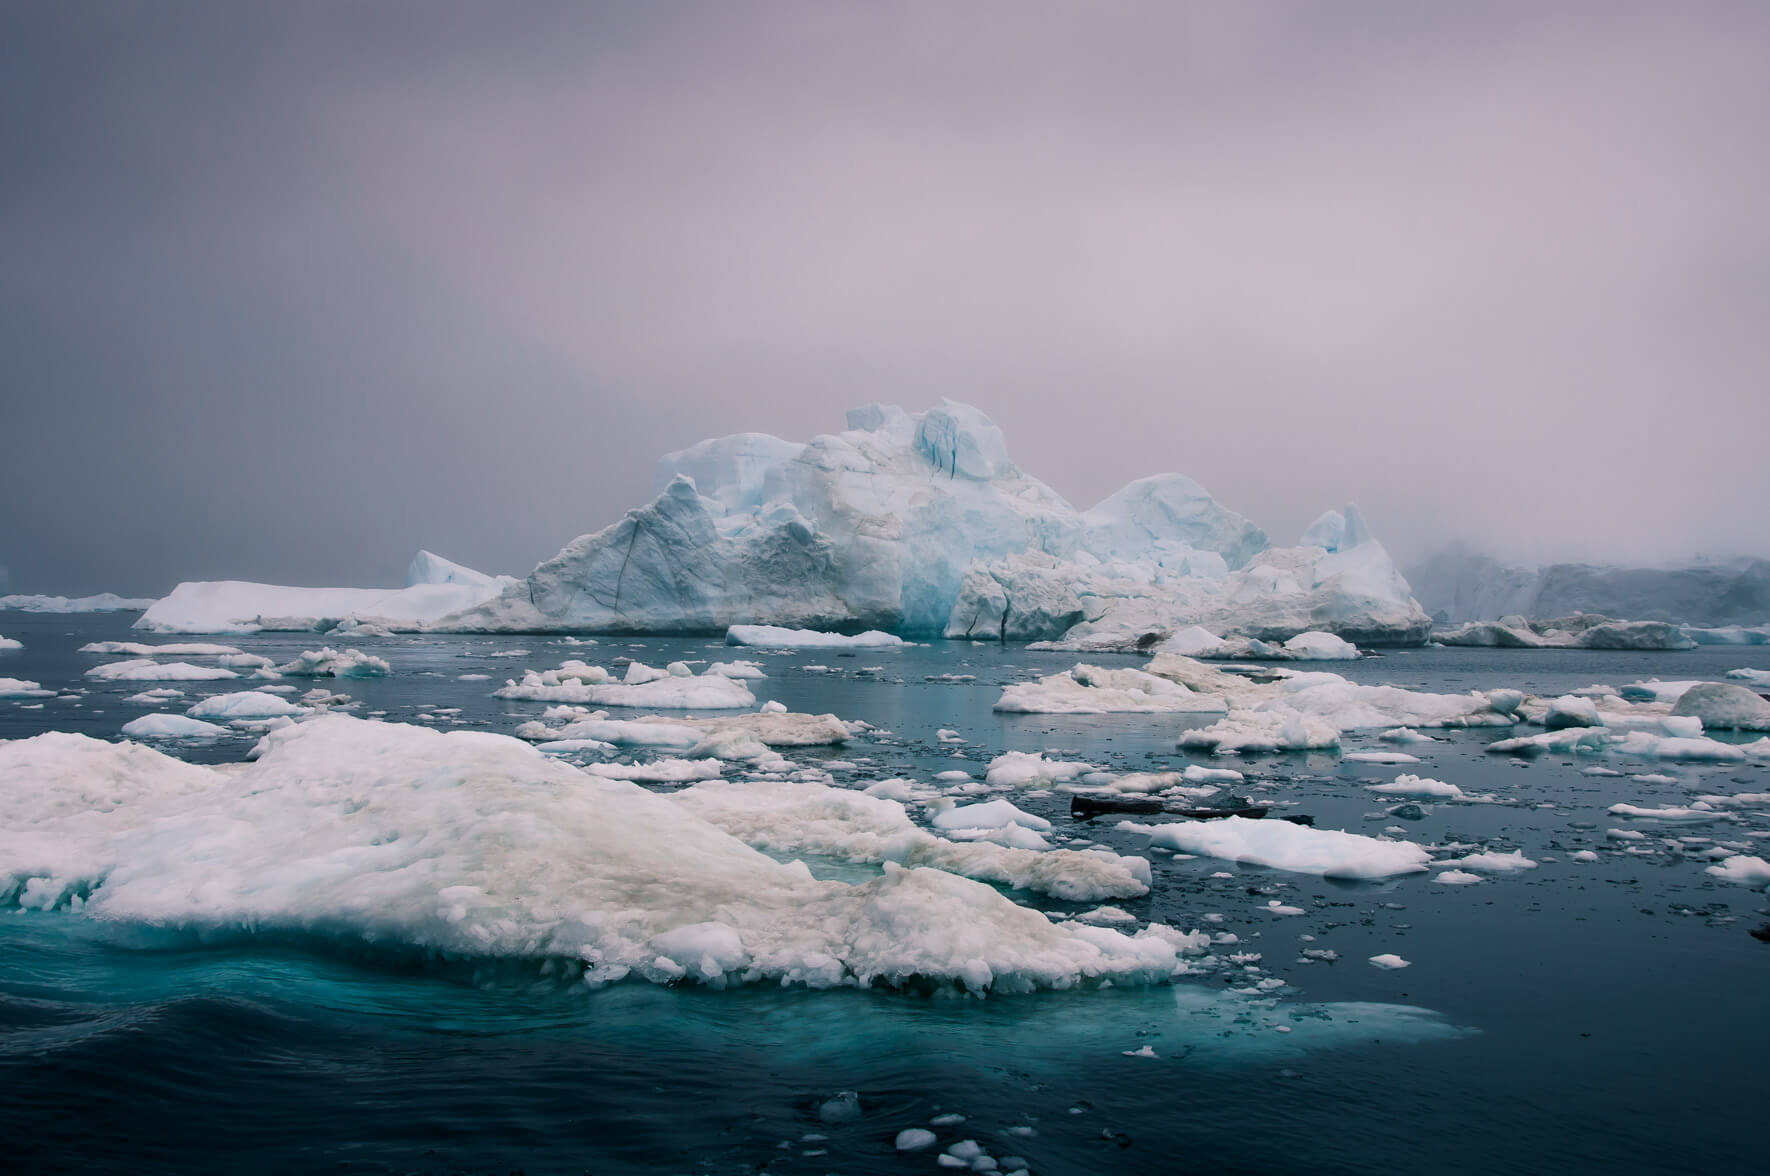 Icebergs in the Disko Bay of Greenland